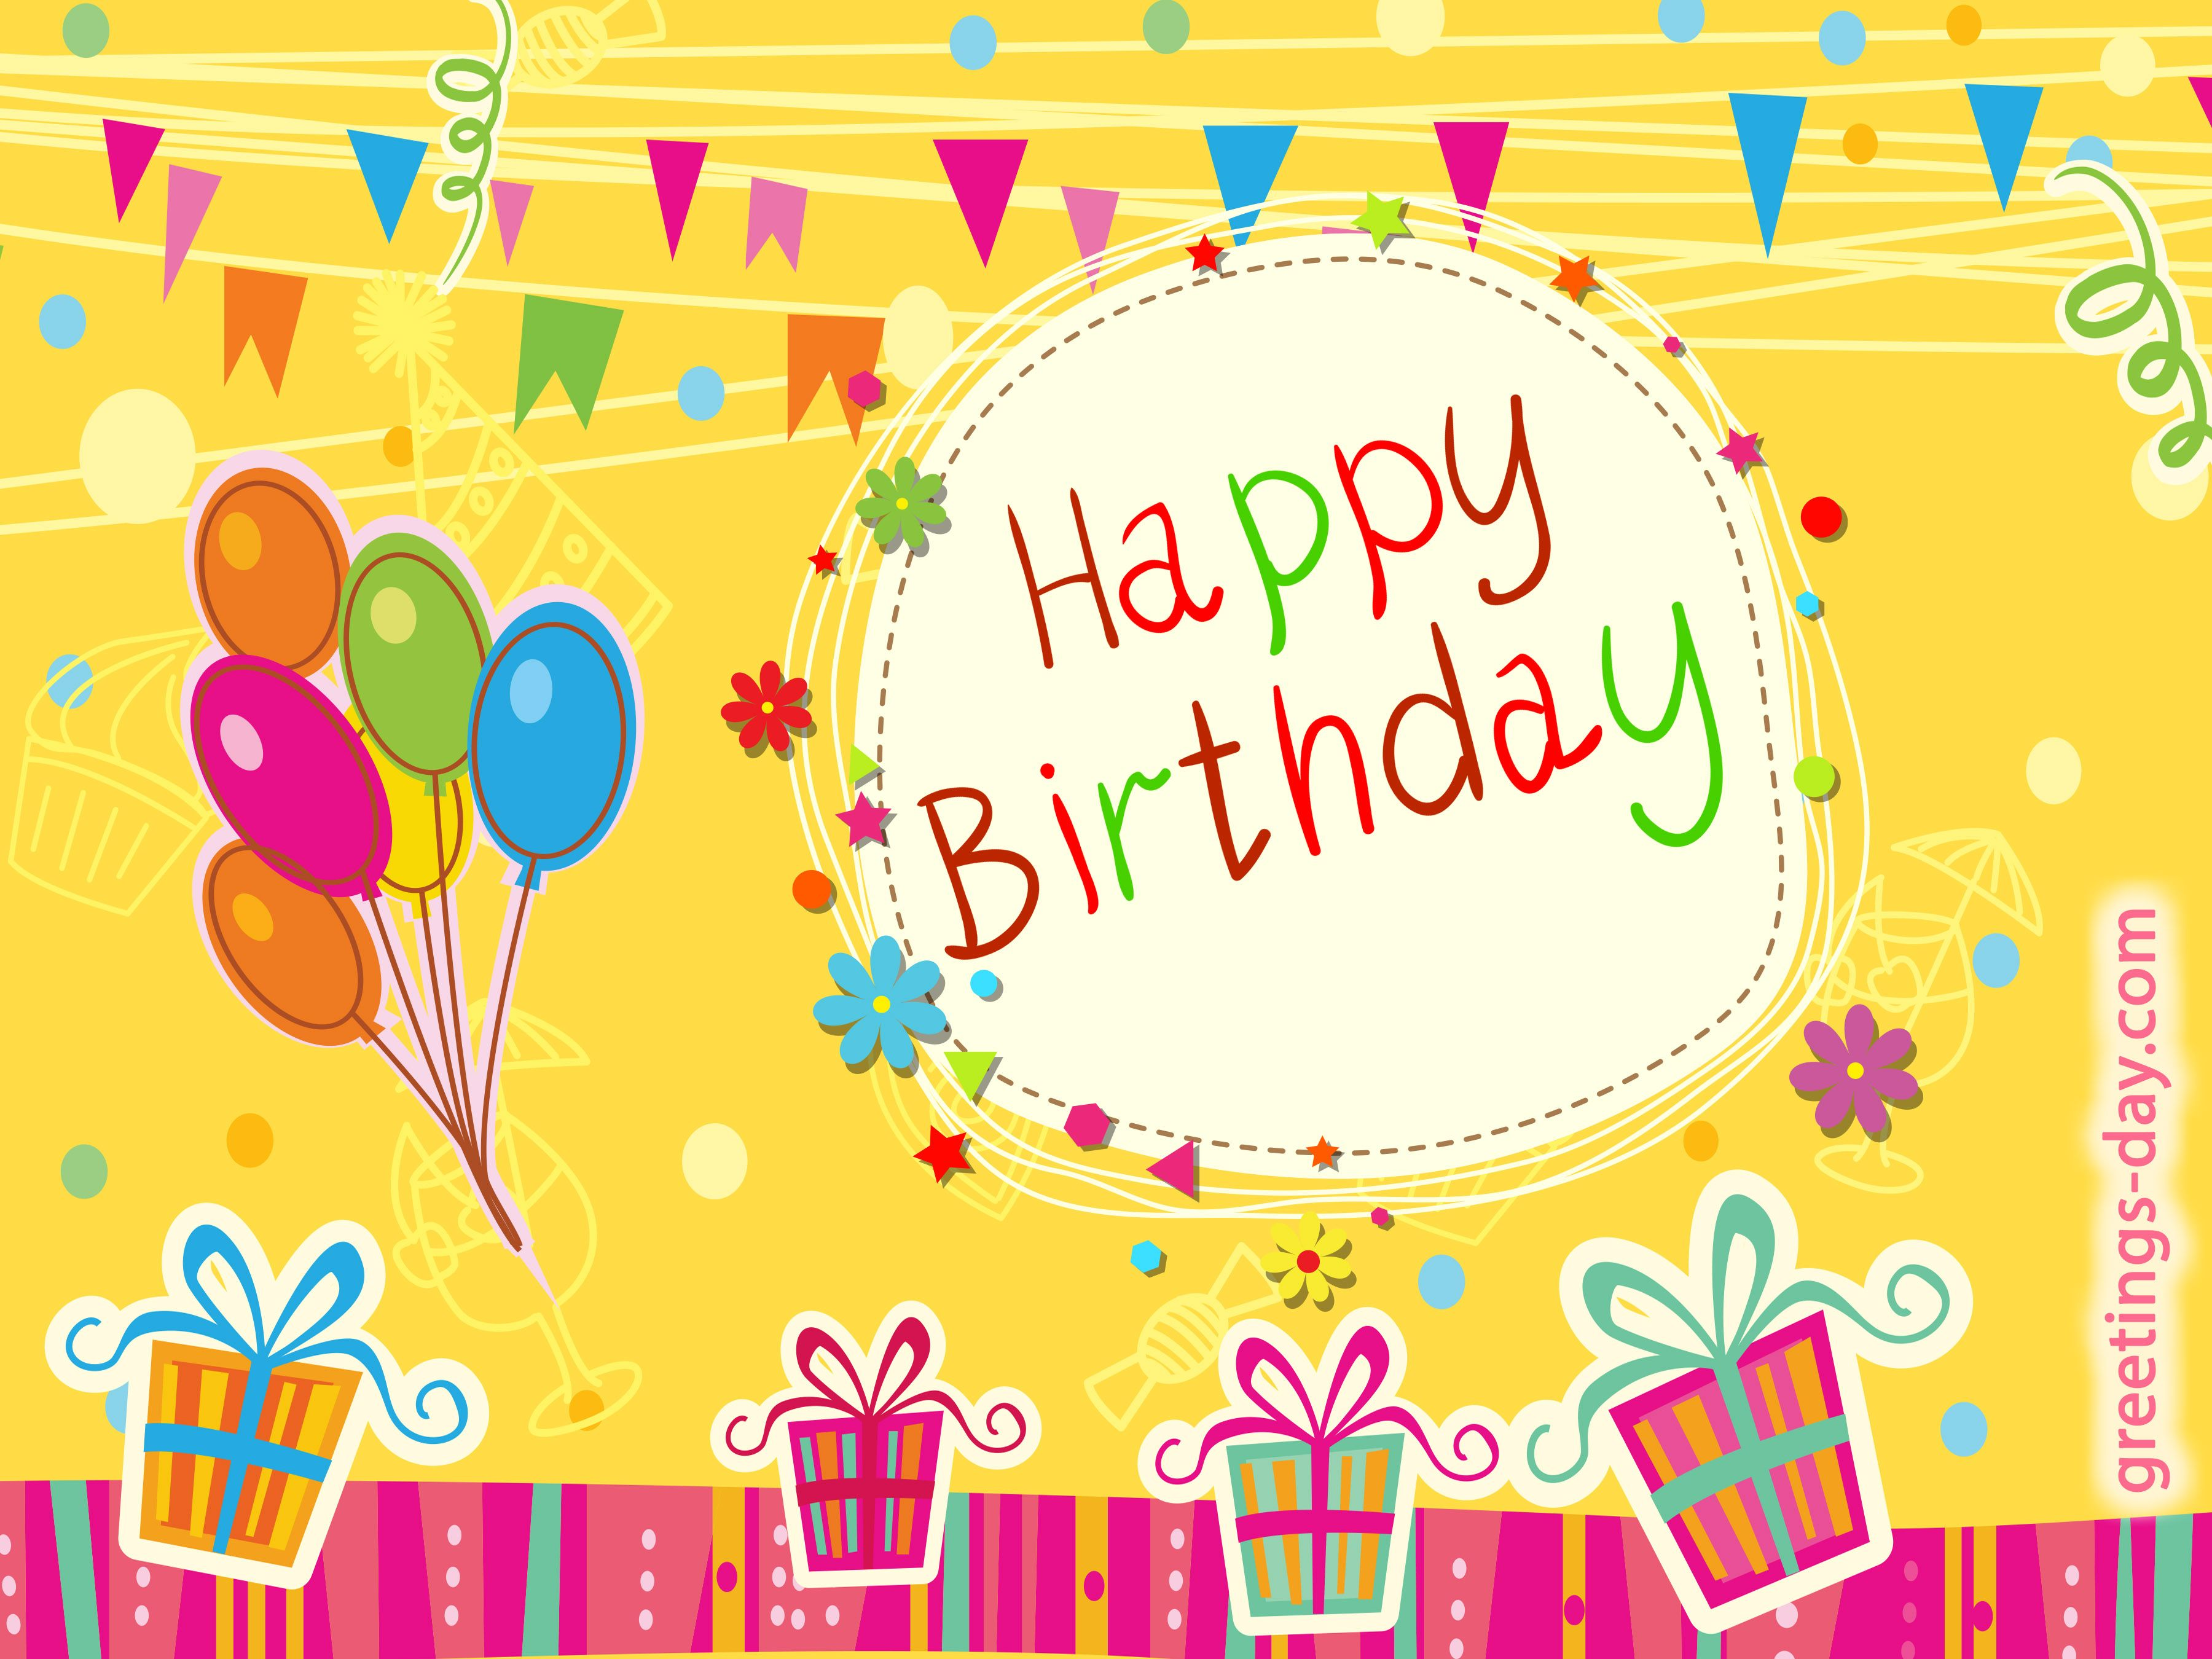 Happy birthday greeting Cards image to you friend on